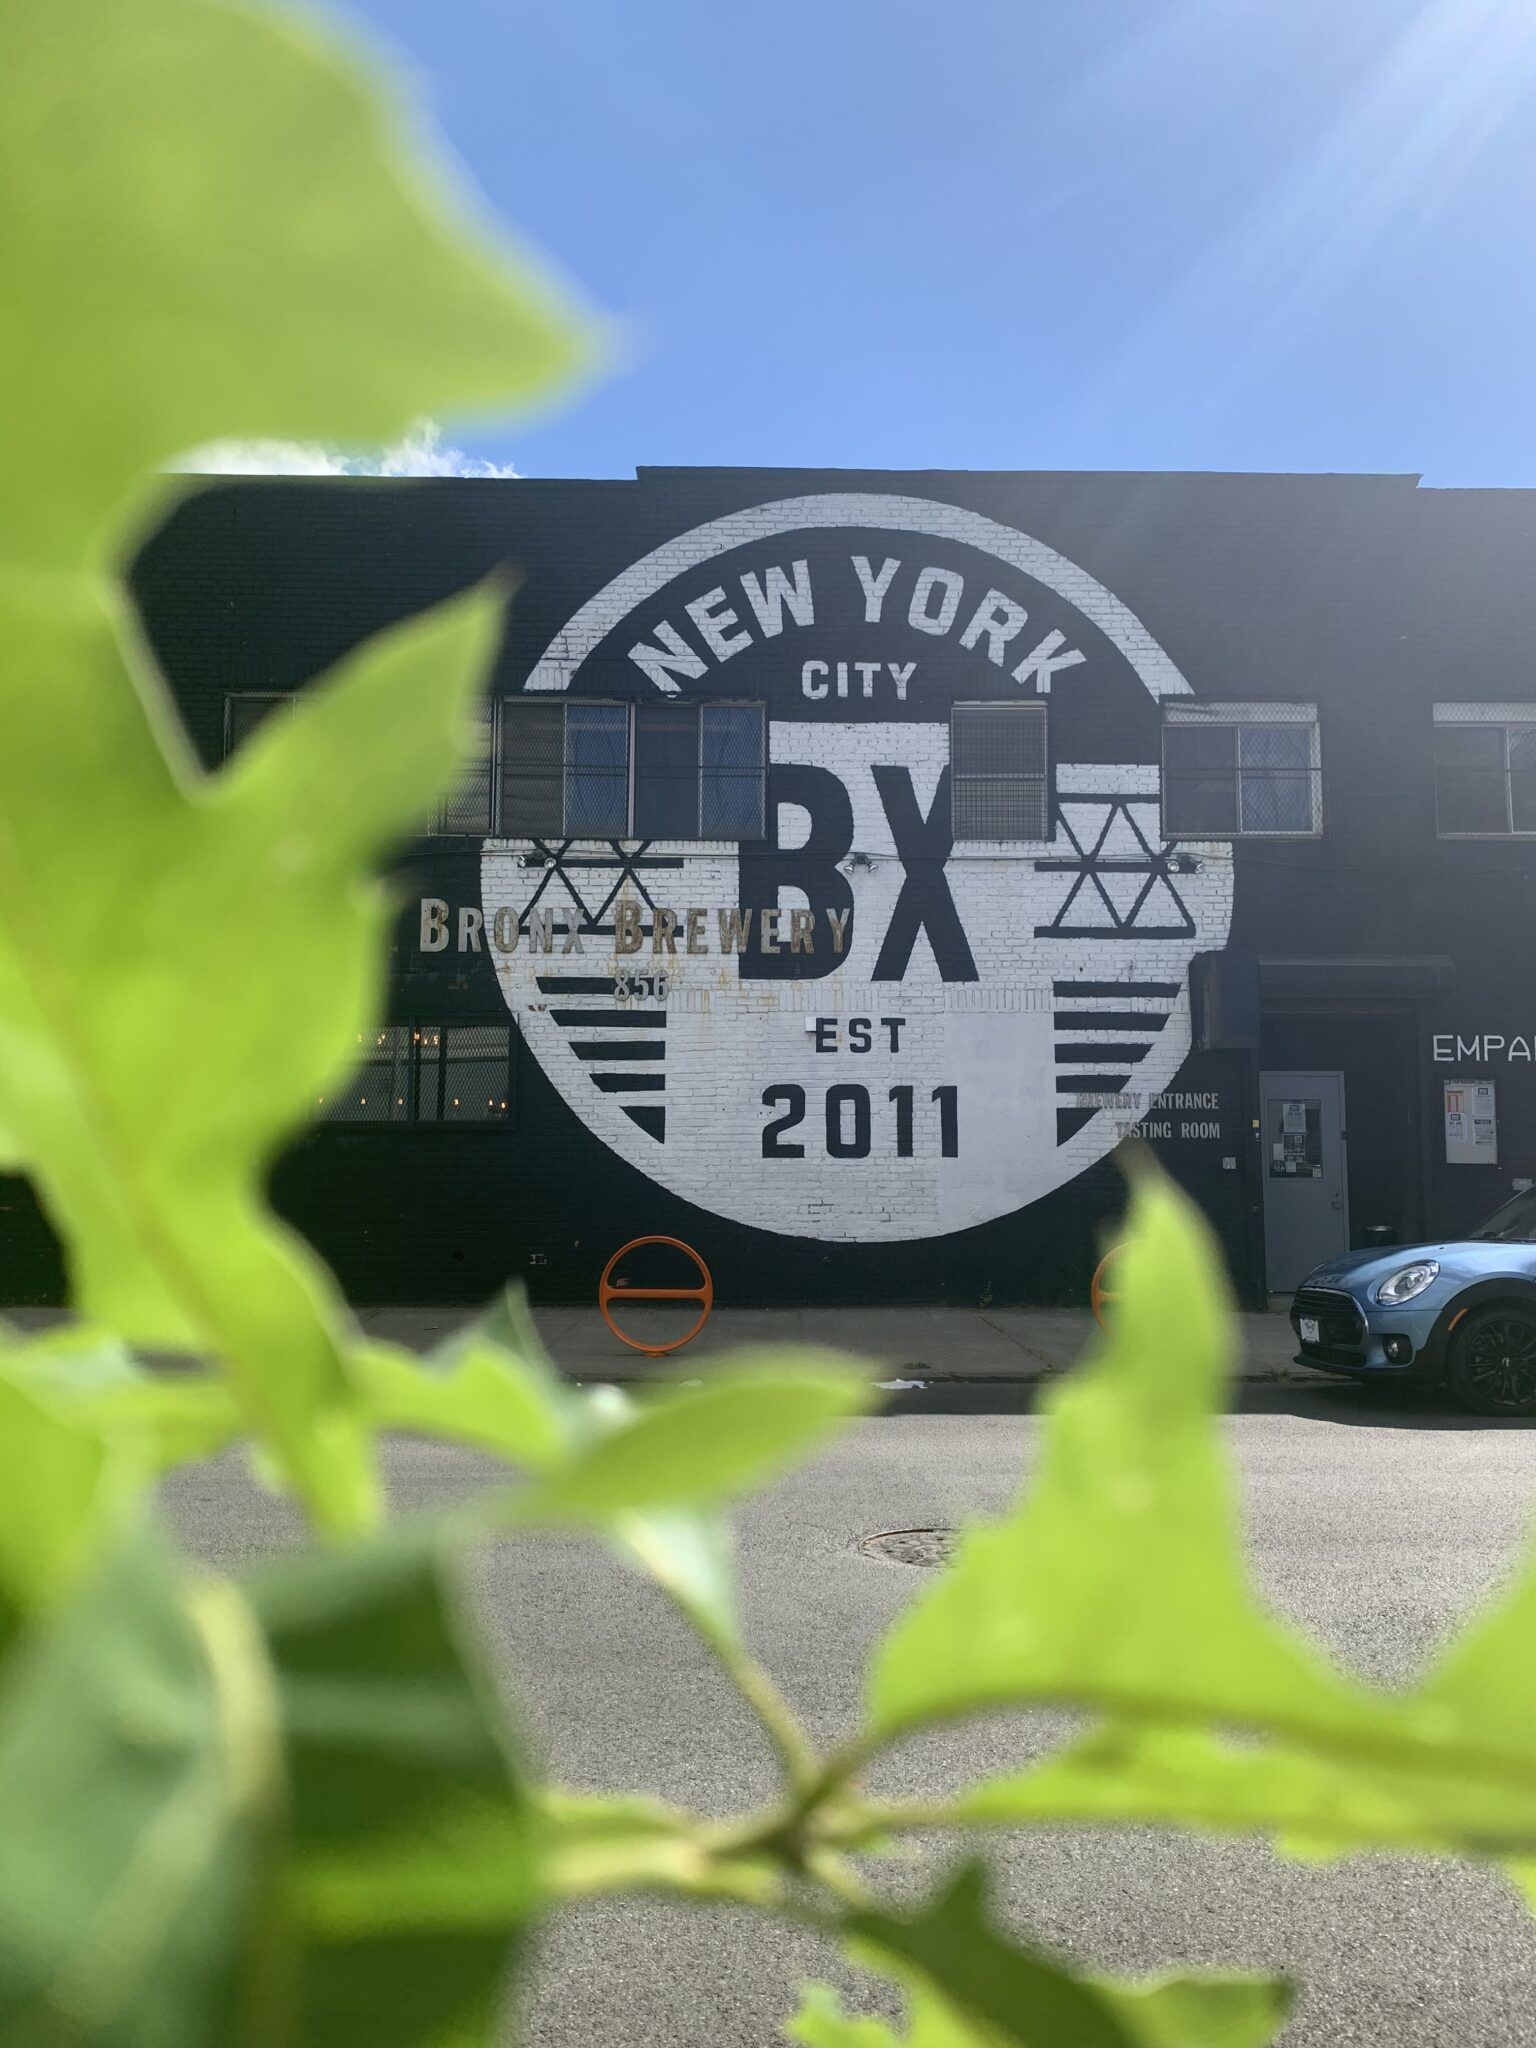 Taproom, Backyard, Empanology & Pickup/Delivery Temporarily Closed